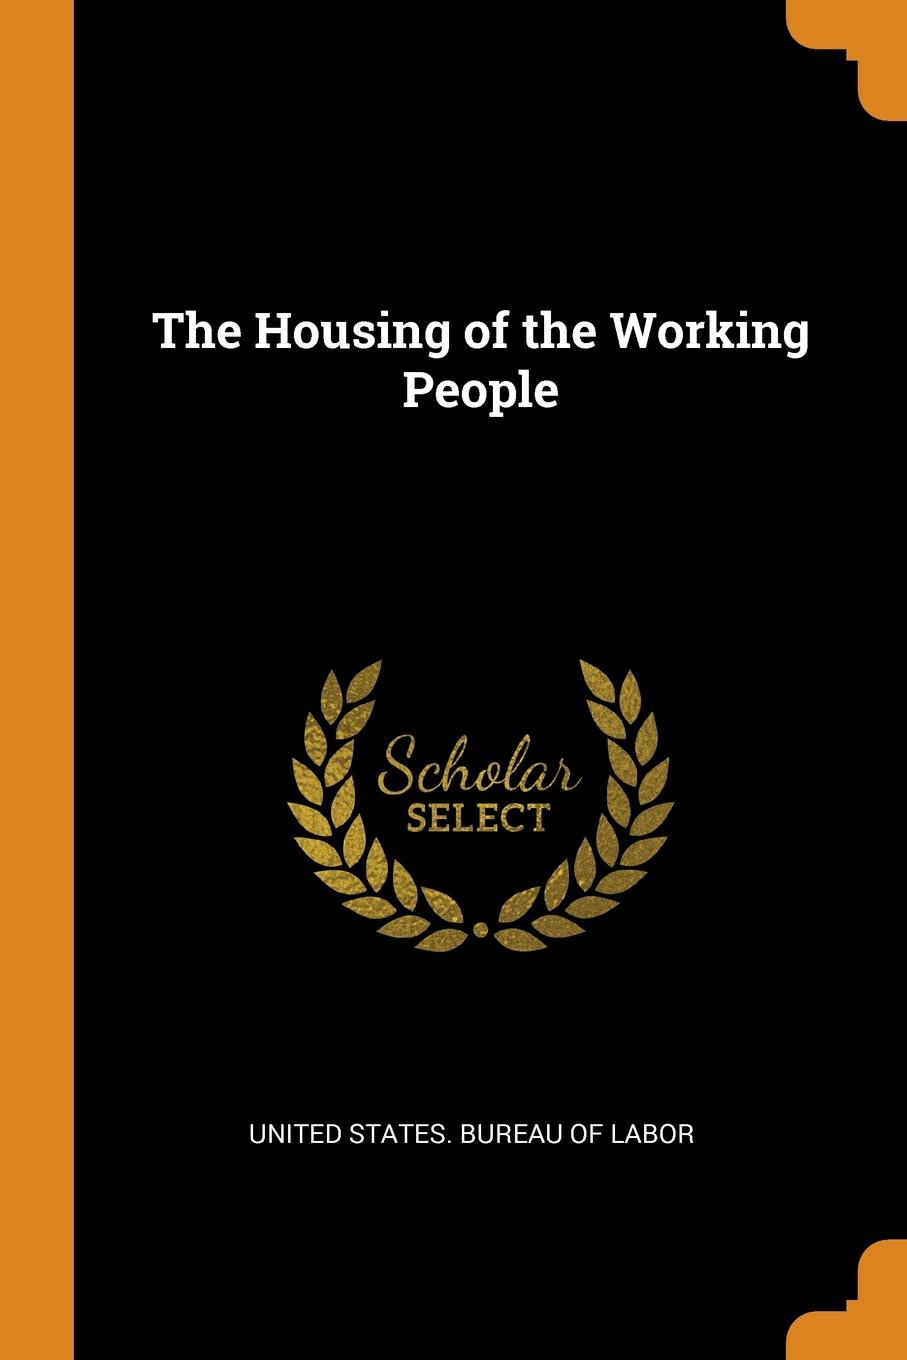 The Housing of the Working People шкаф для ванной the united states housing